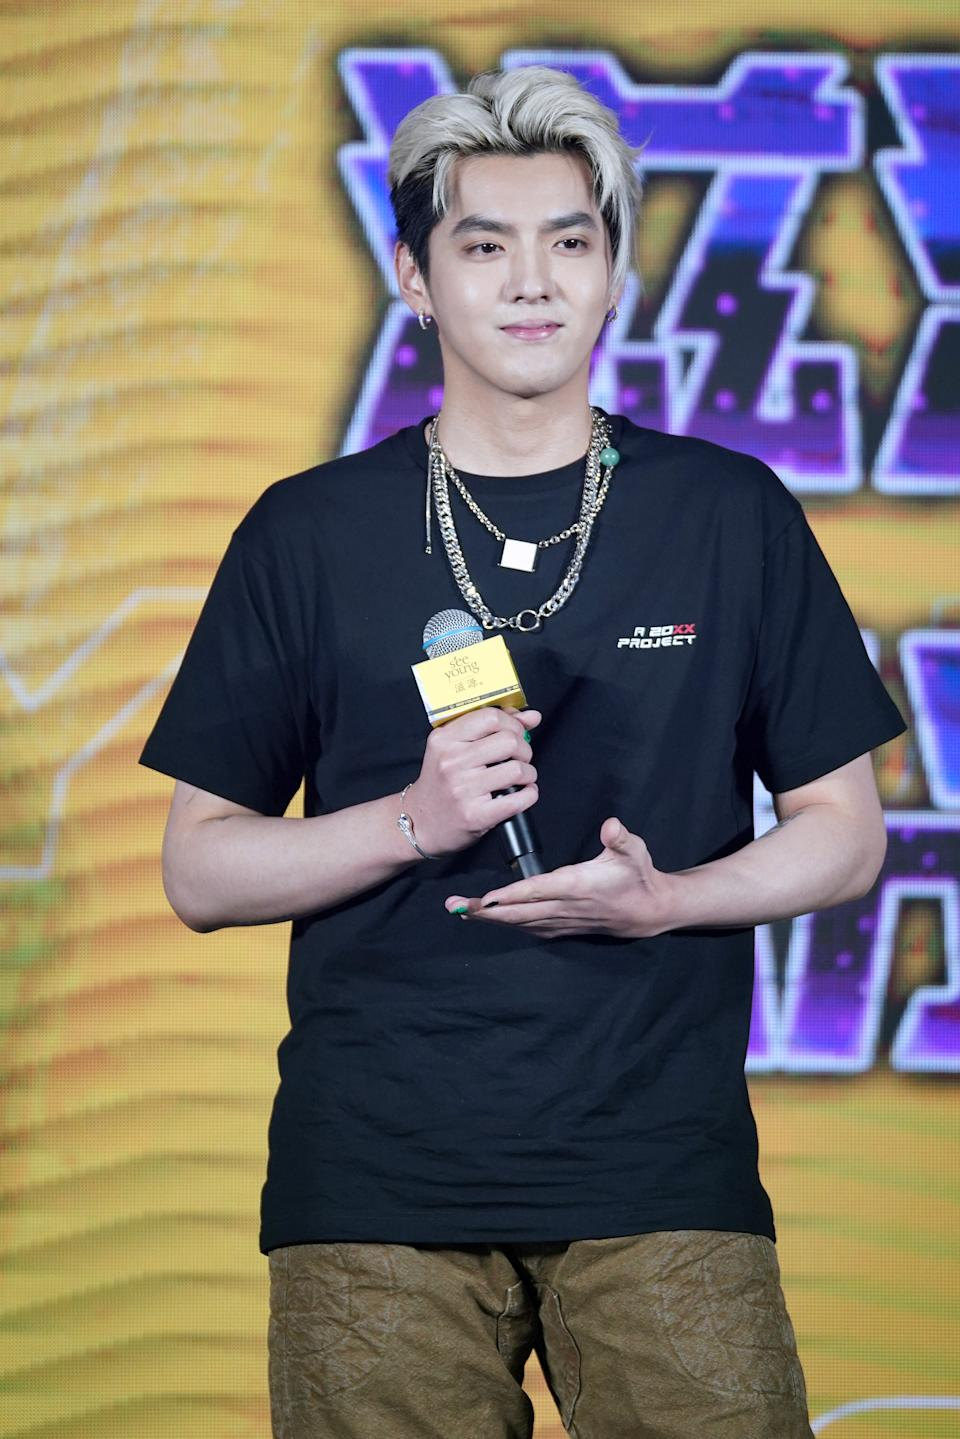 SHANGHAI, CHINA - MAY 28: Singer Kris Wu attends Seeyoung promotional event on May 28, 2021 in Shanghai, China. (Photo by VCG/VCG via Getty Images)